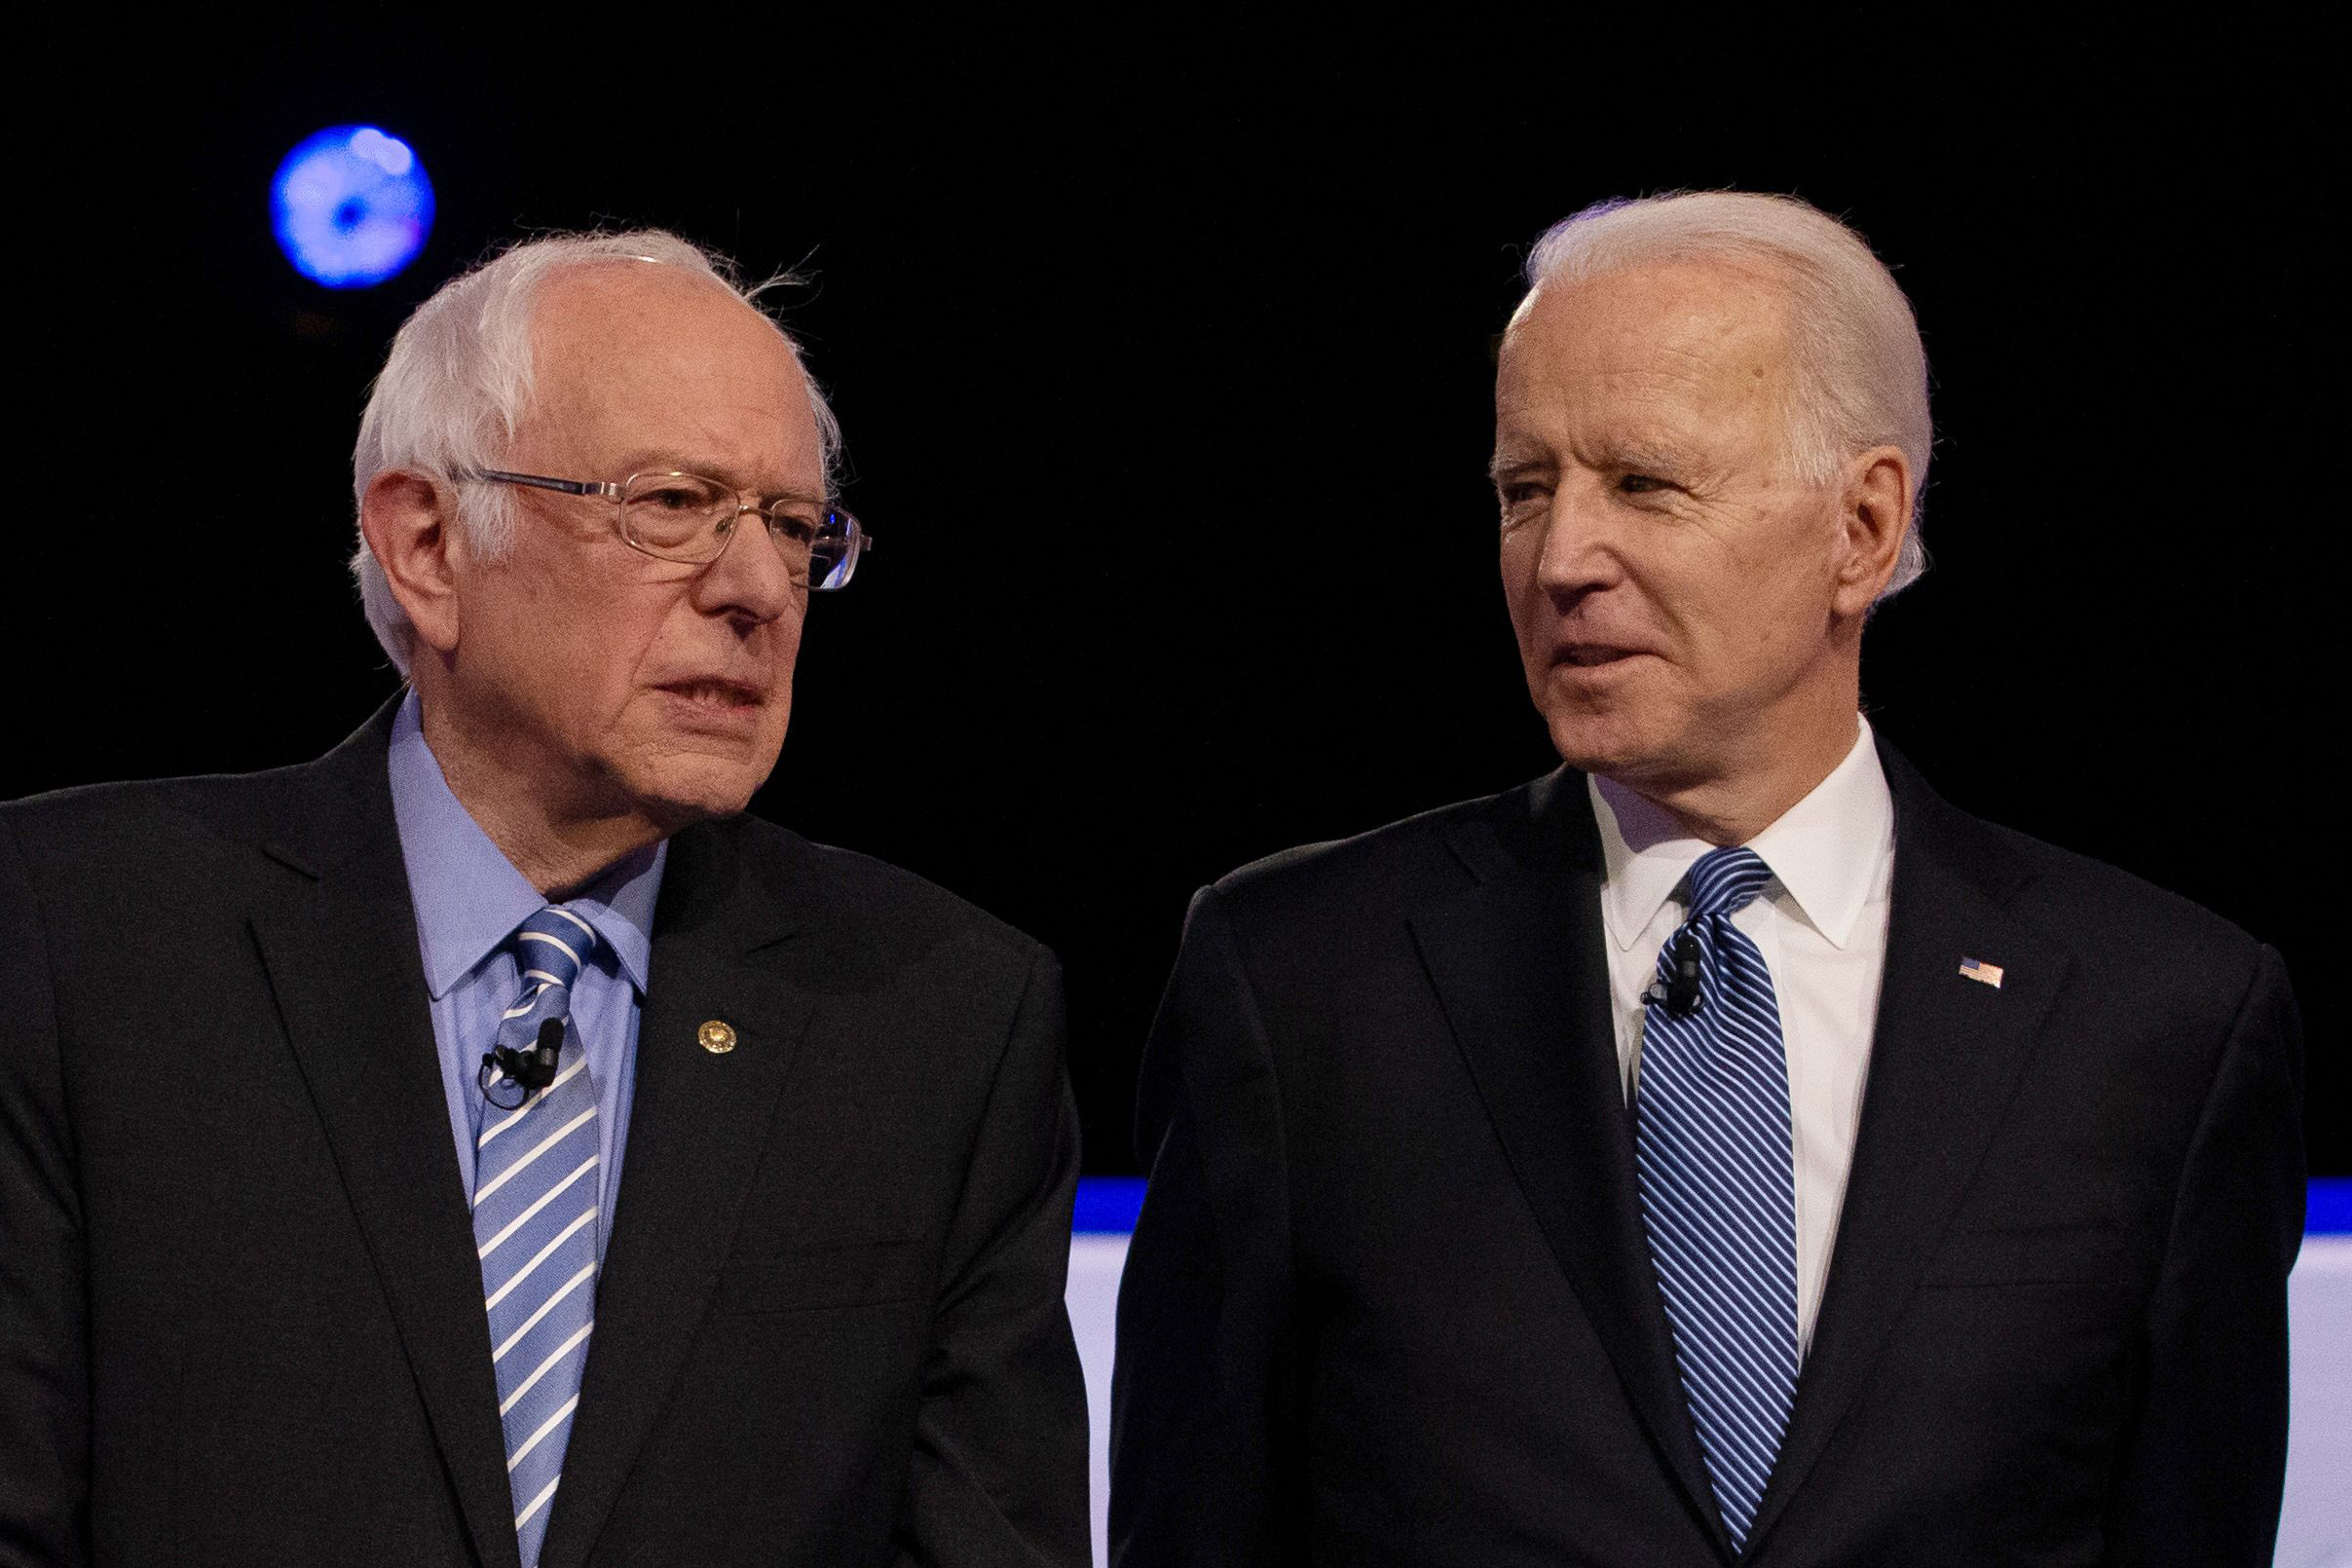 Democratic 2020 U.S. presidential candidates U.S. Senator Bernie Sanders and former Vice President Joe Biden take the stage for the tenth Democratic 2020 presidential debate at the Gaillard Center in Charleston, South Carolina, U.S. February 25, 2020. REUTERS/Randall Hill